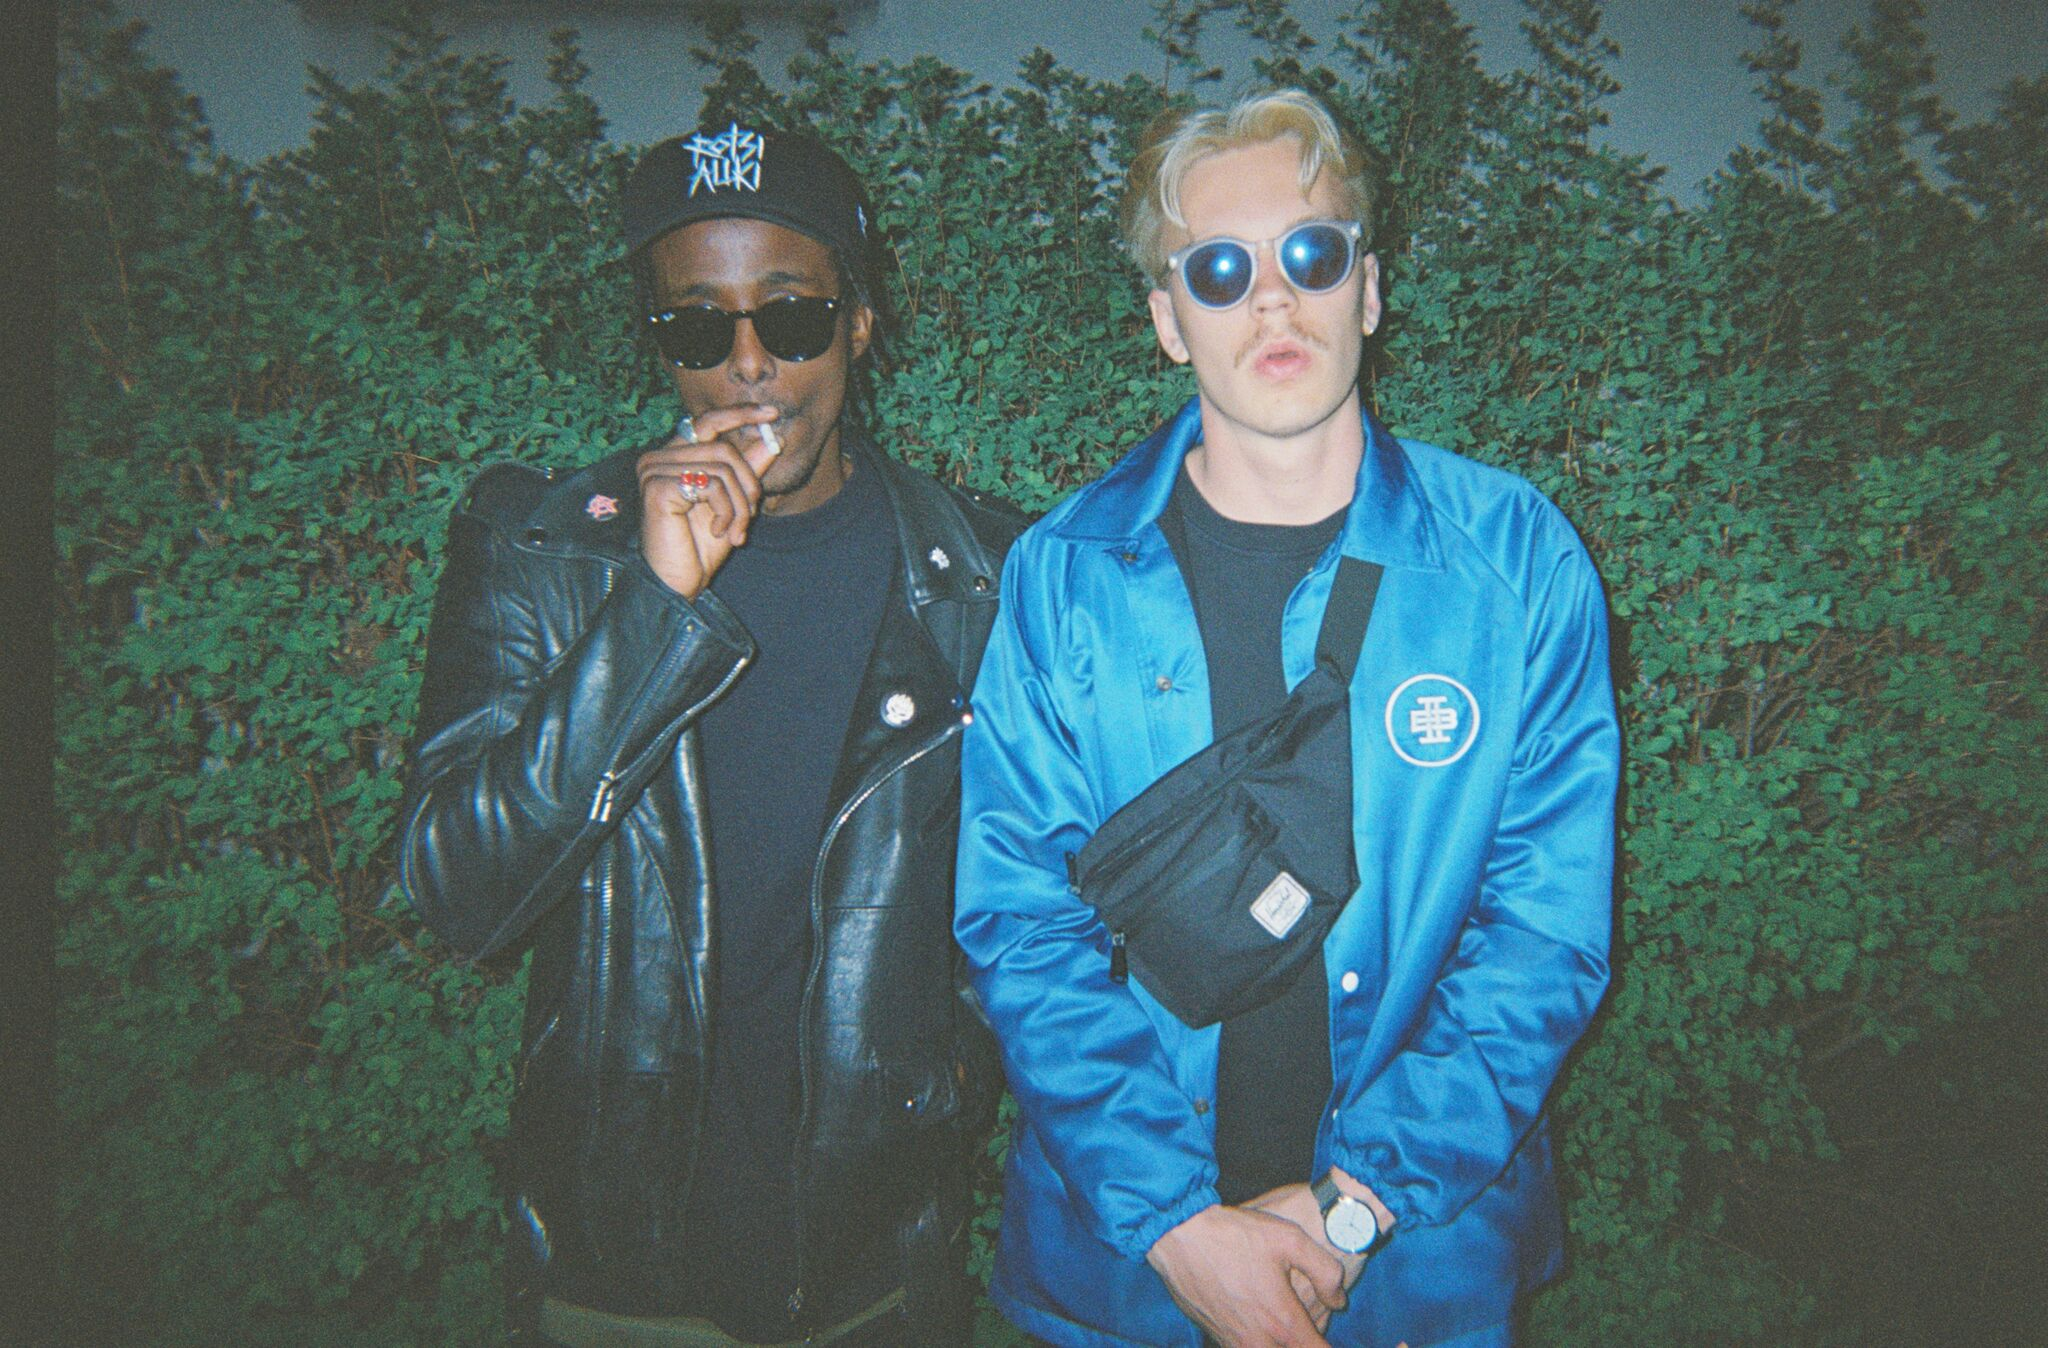 Issa Vibe has been taking over Helsinki's club scene like a storm with their hot & sweaty RnB and hip-hop parties. We sat down with the guys everyone is talking about. Read all about it from below. -